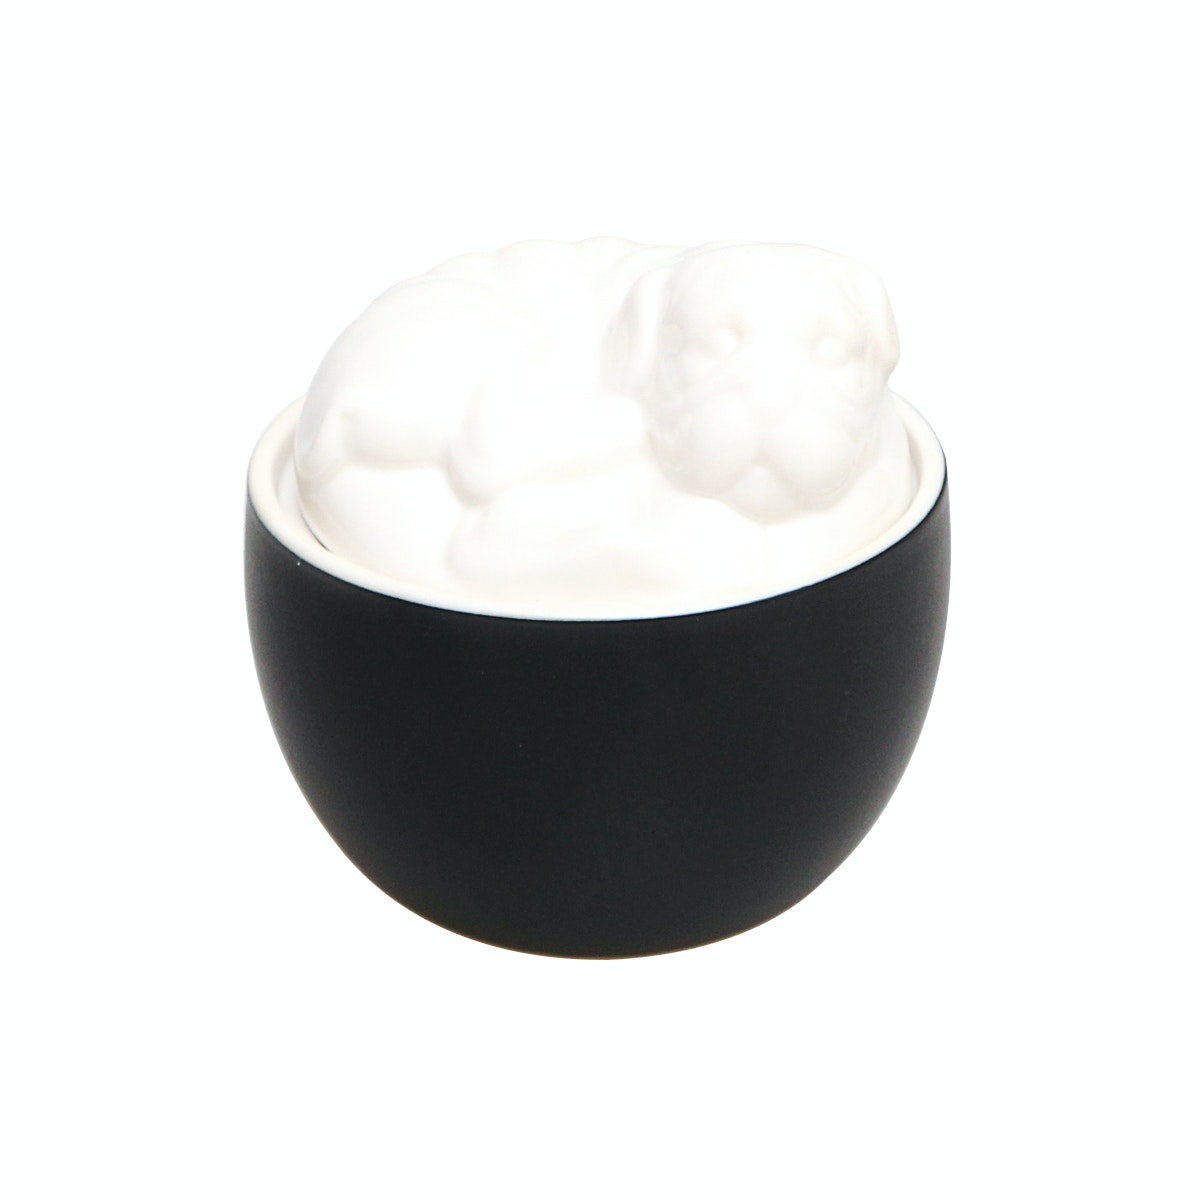 VIVERE Bowl Dog Black White 12x12x11cm